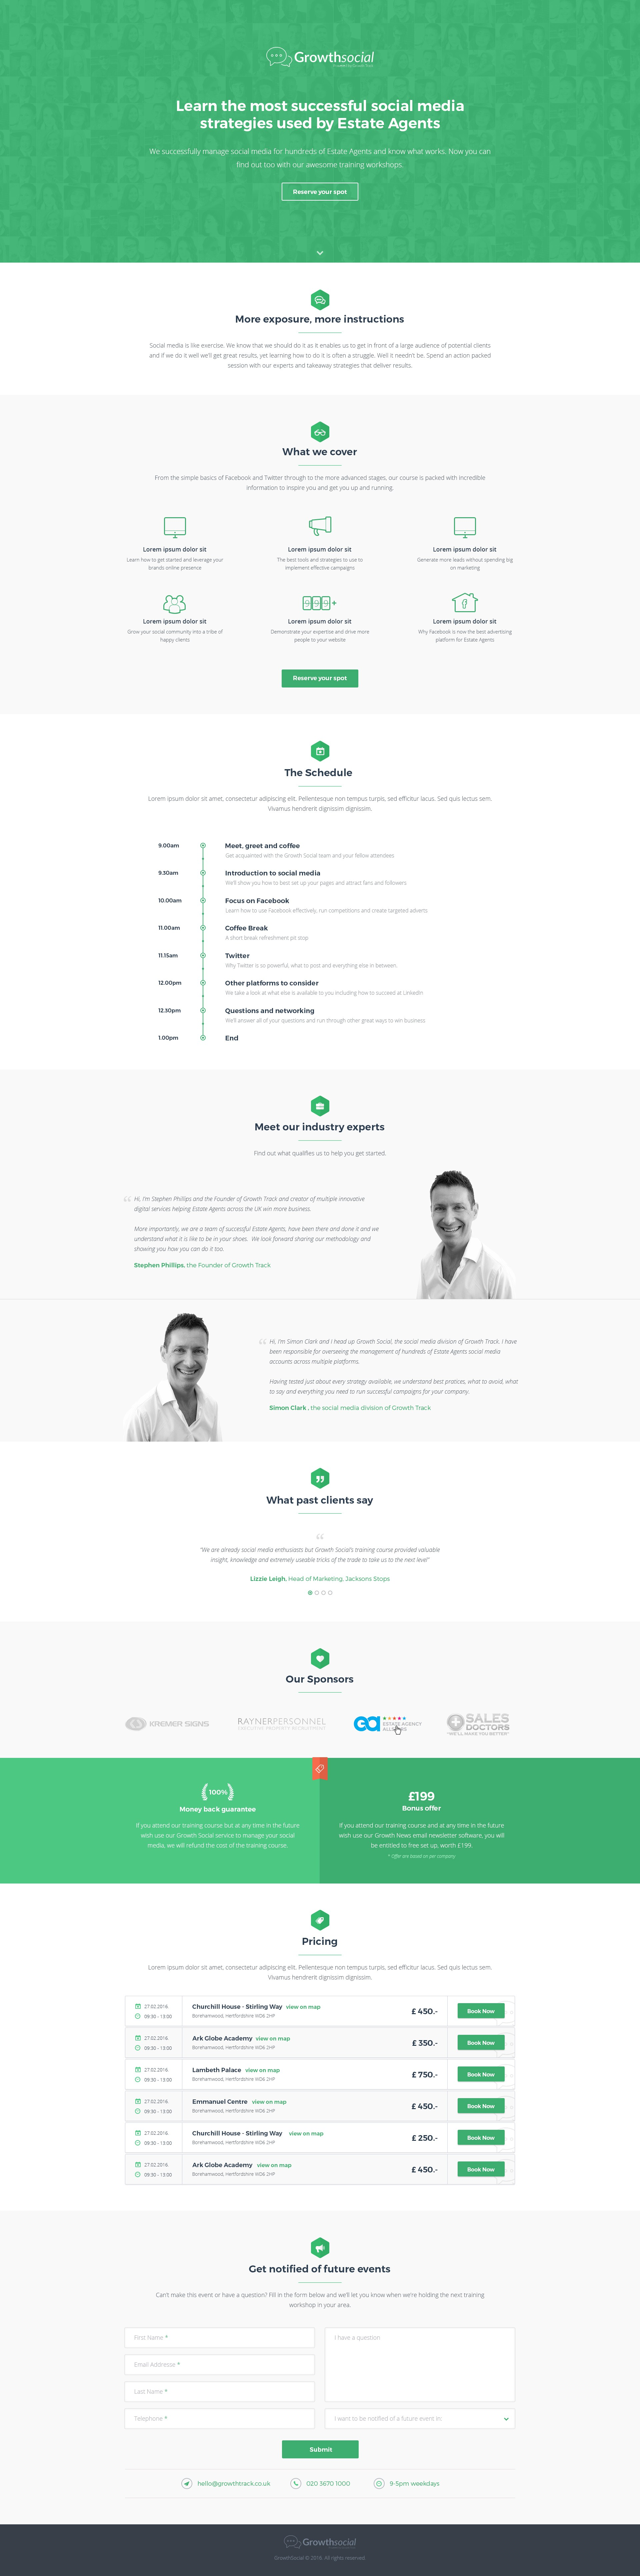 Create a captivating clean style landing page for social media training workshops